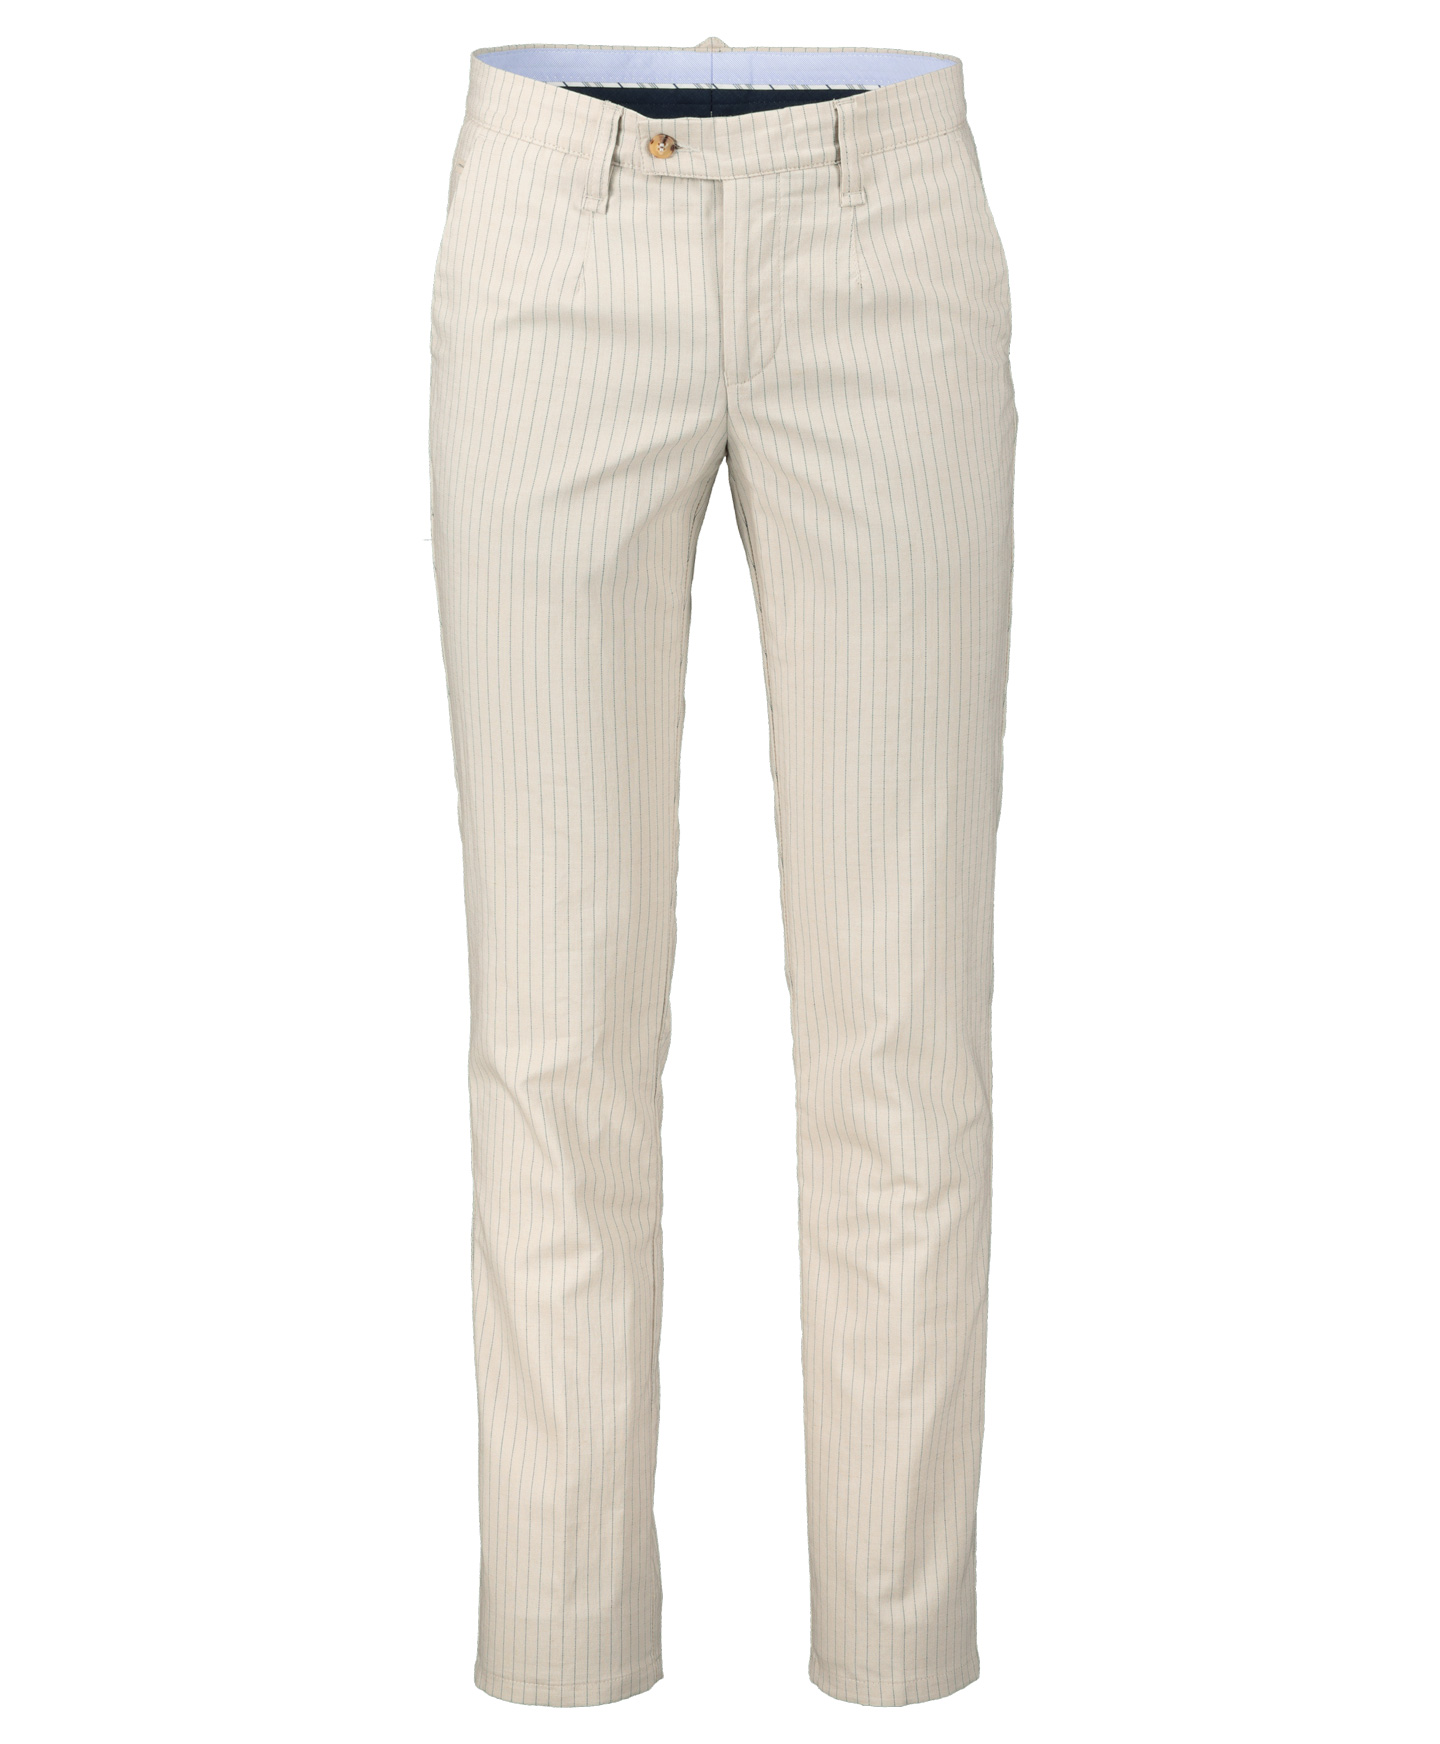 Nils Chino - Slim Fit - Beige